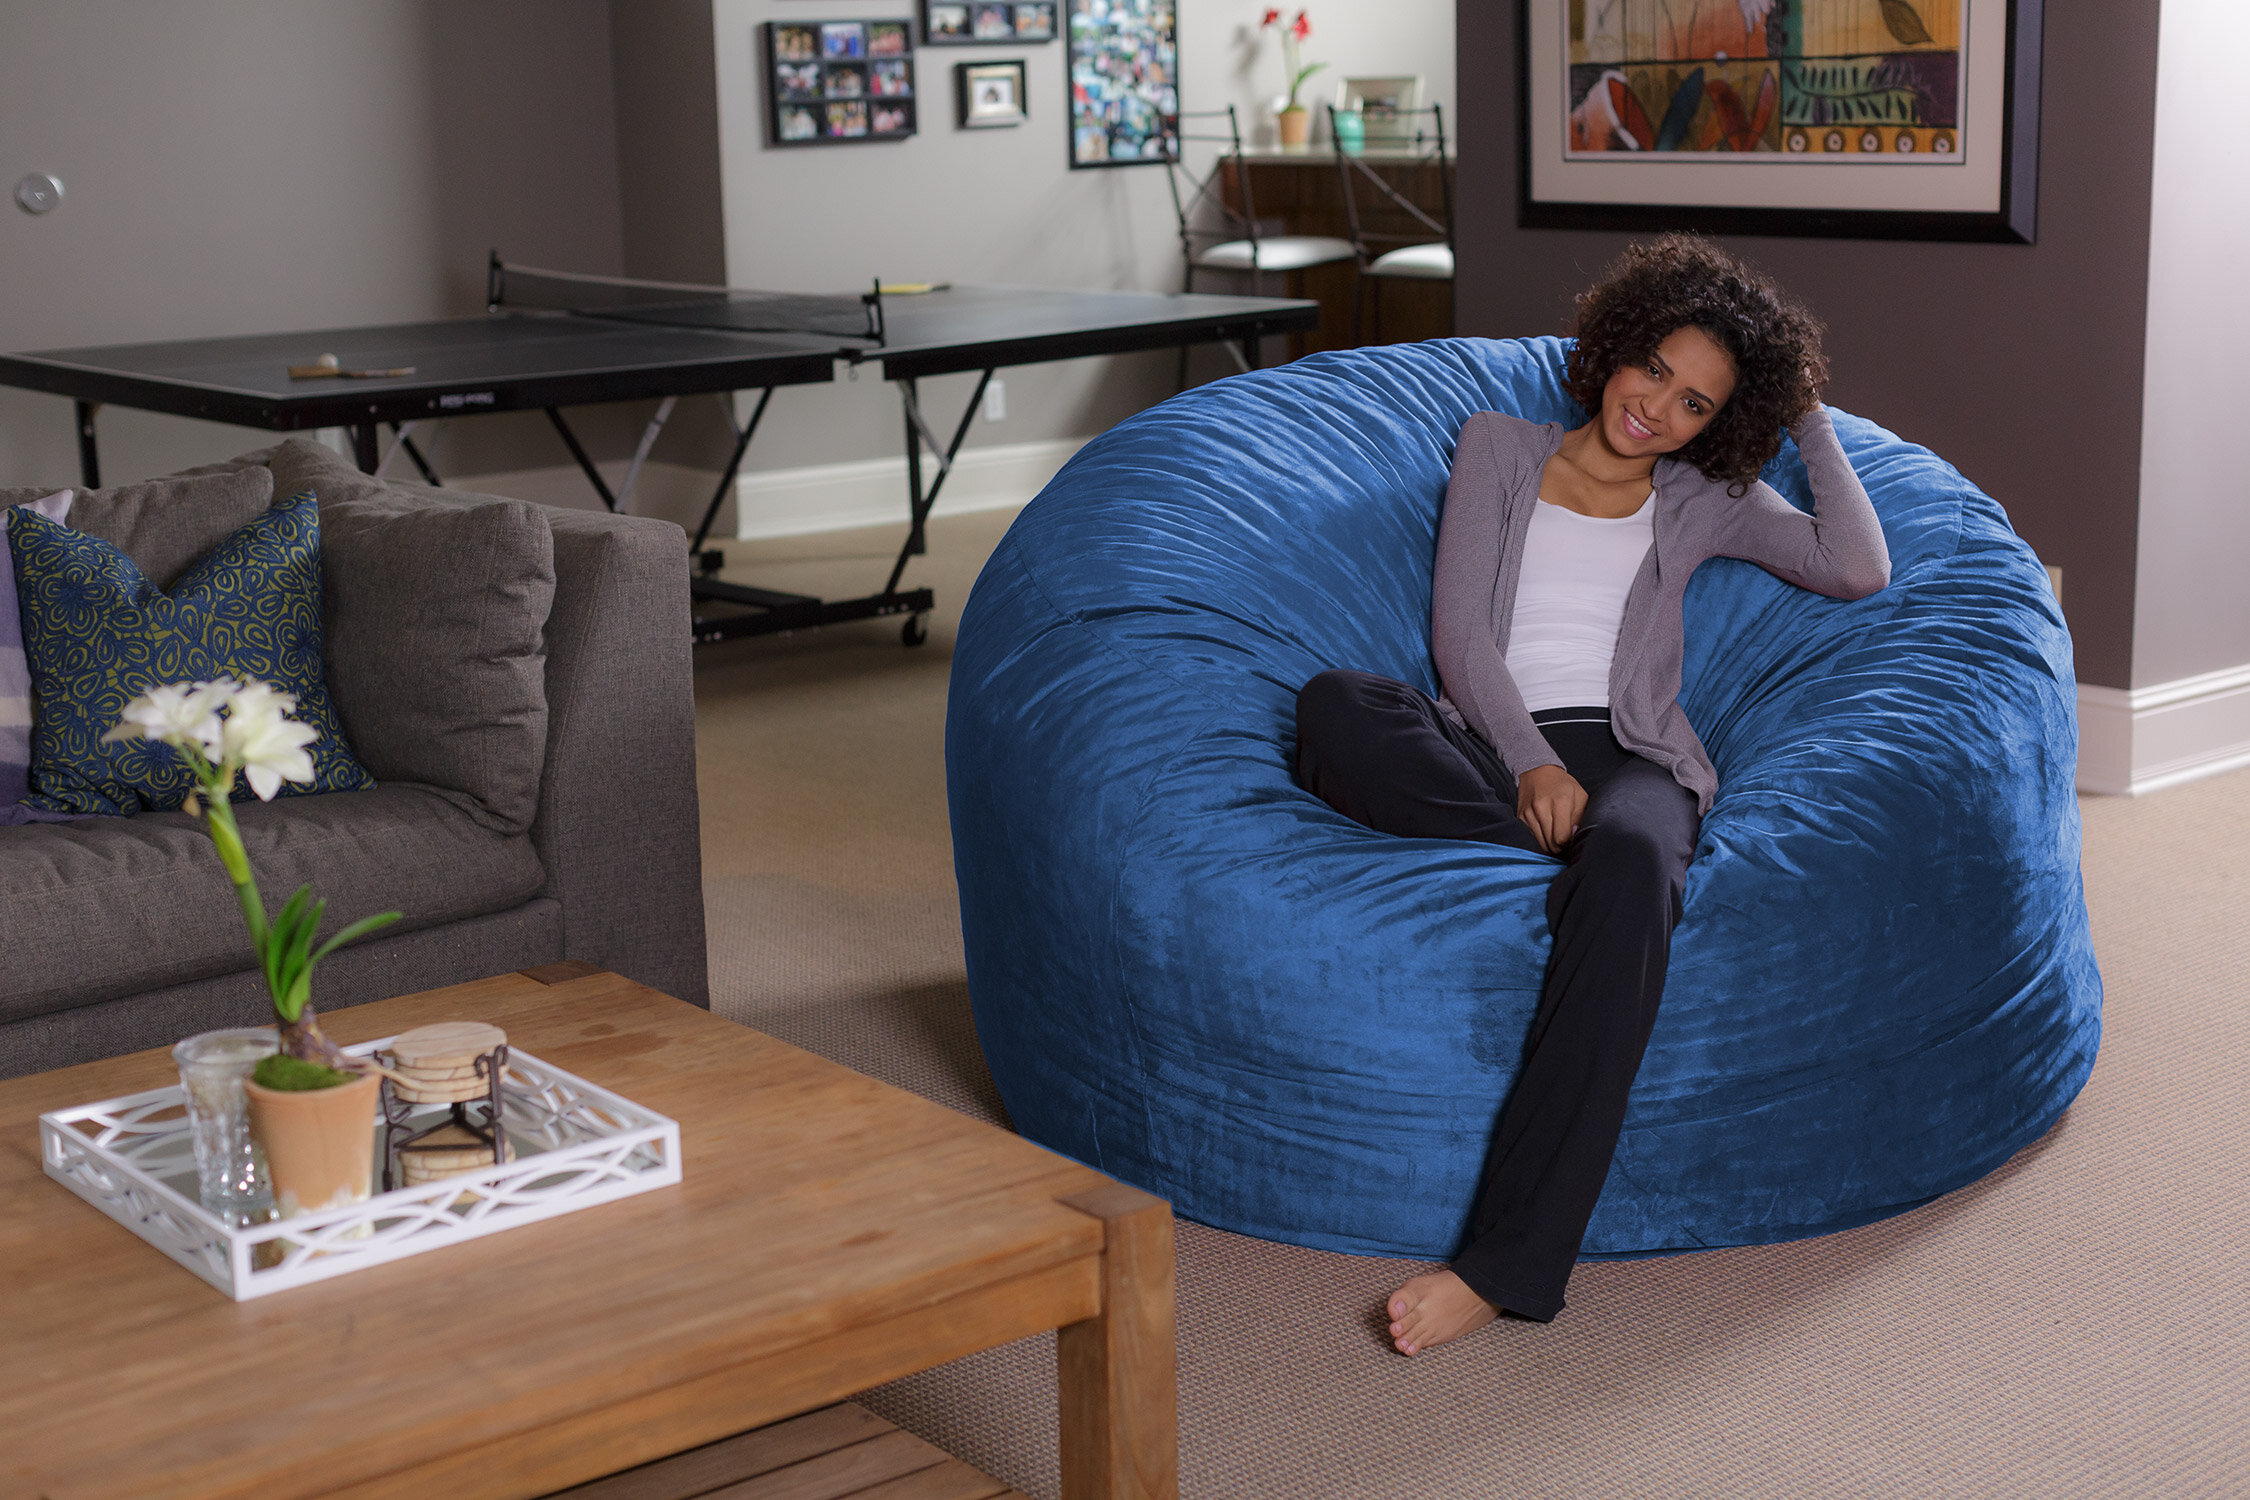 Ebern Designs Bean Bag Chair U0026 Reviews | Wayfair